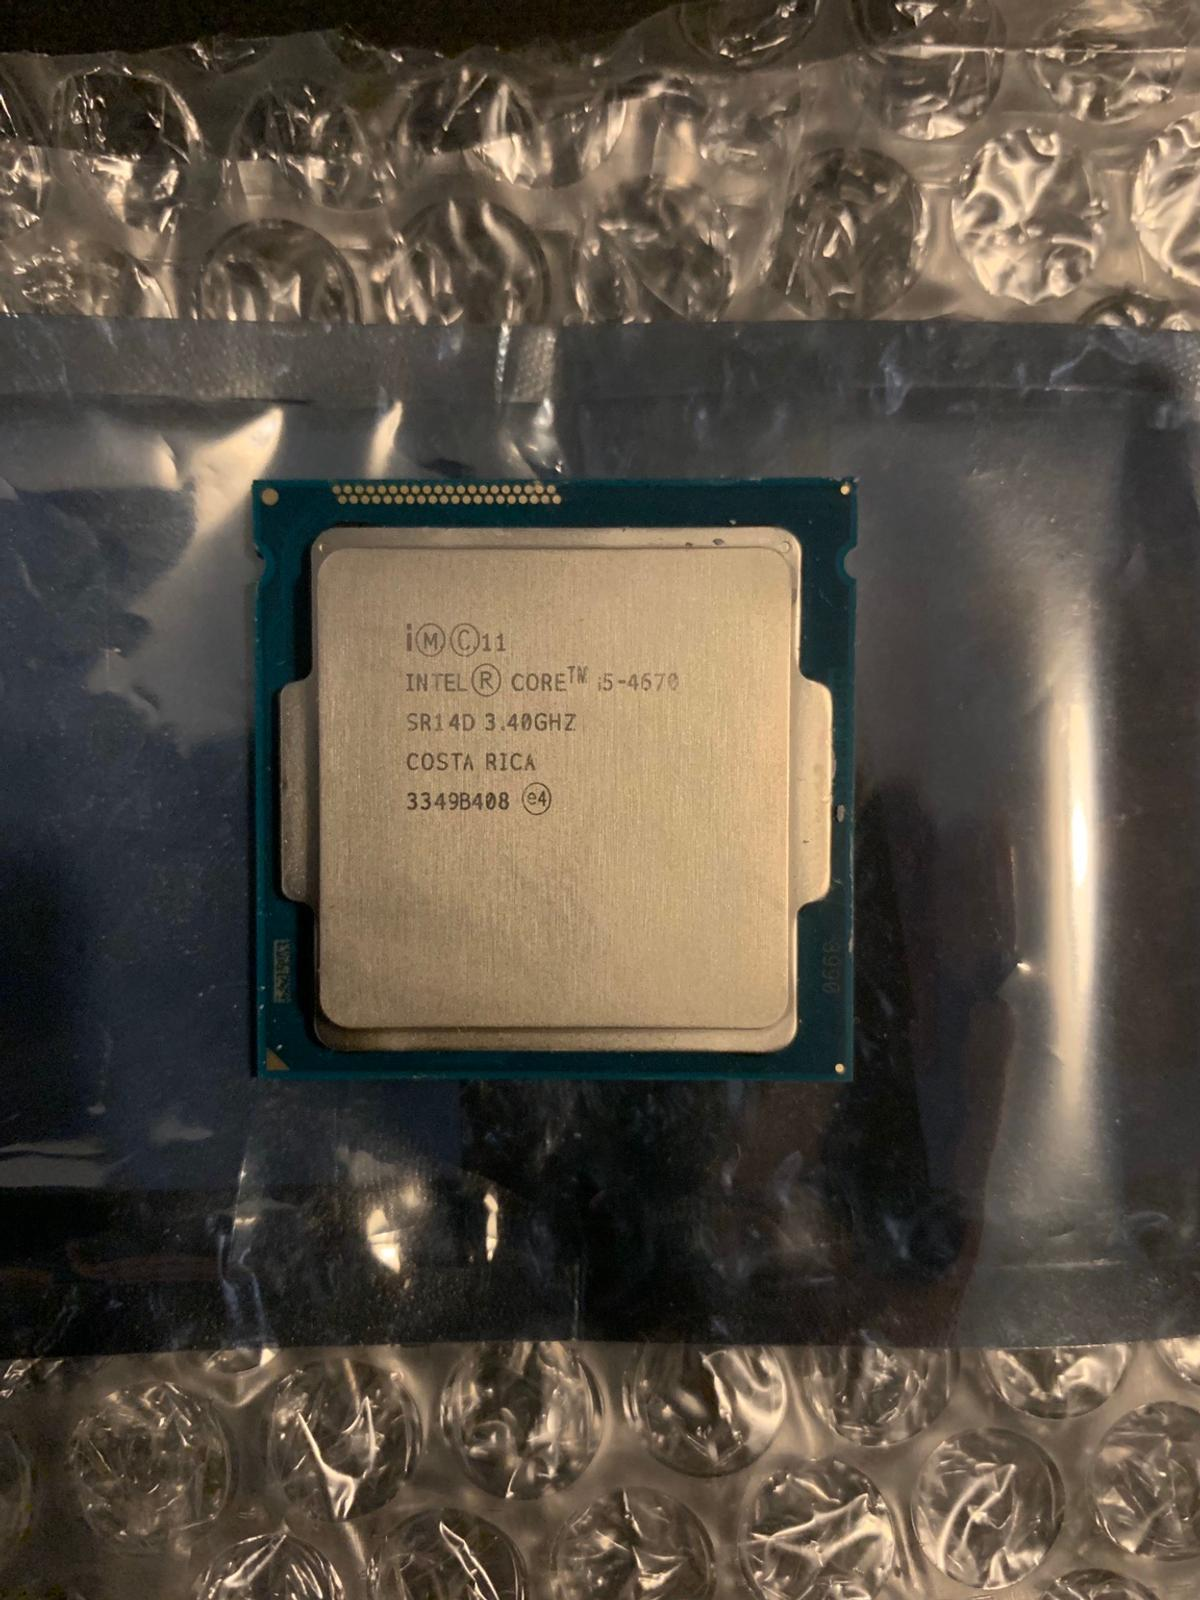 Intel Core i5-4670 Quad Core 3.4GHz.  Any questions please ask.